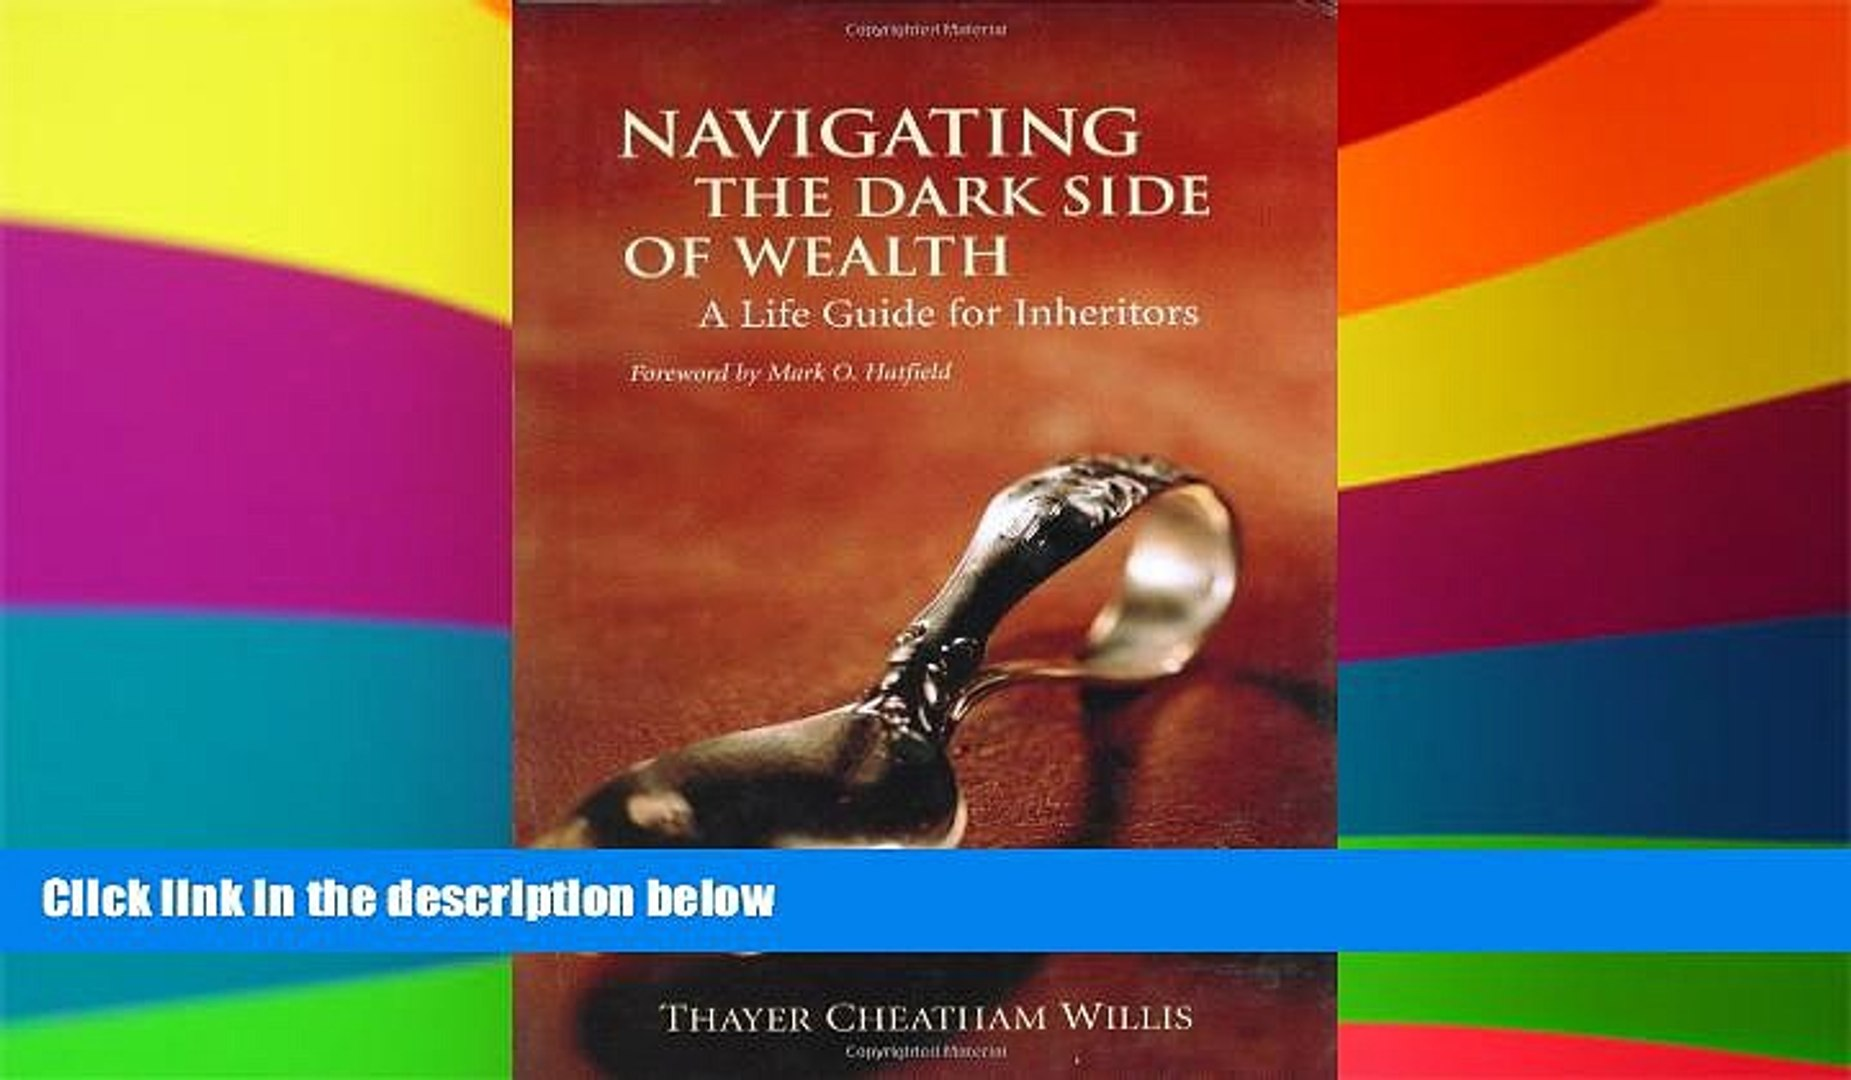 Navigating the Dark Side of Wealth A Life Guide for Inheritors